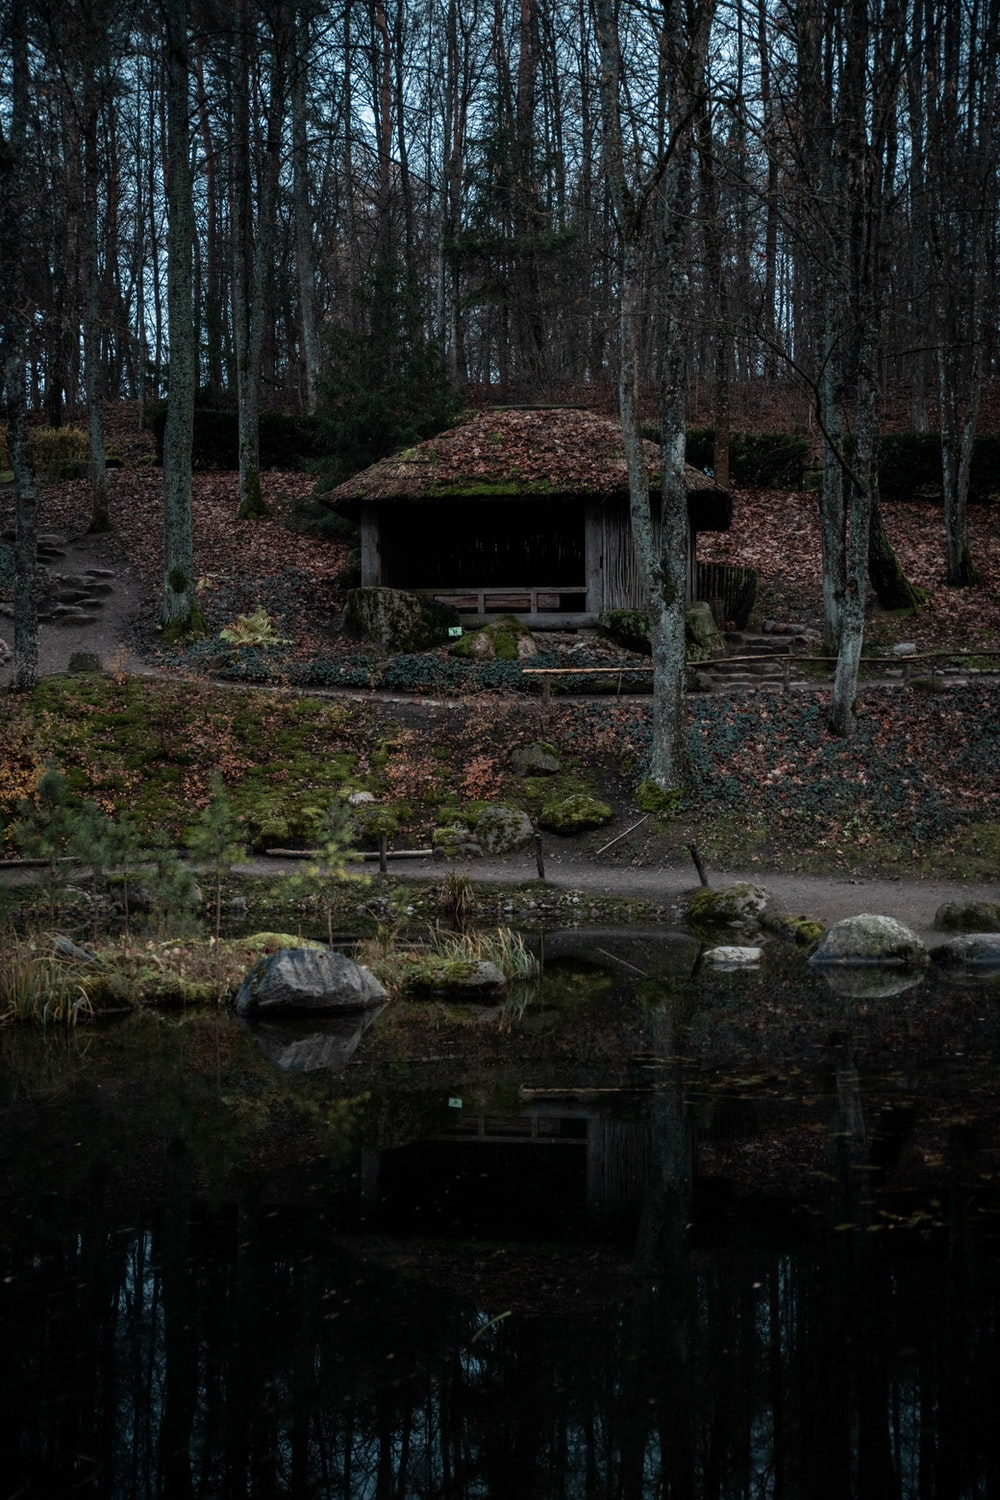 shed in the woods near body of water